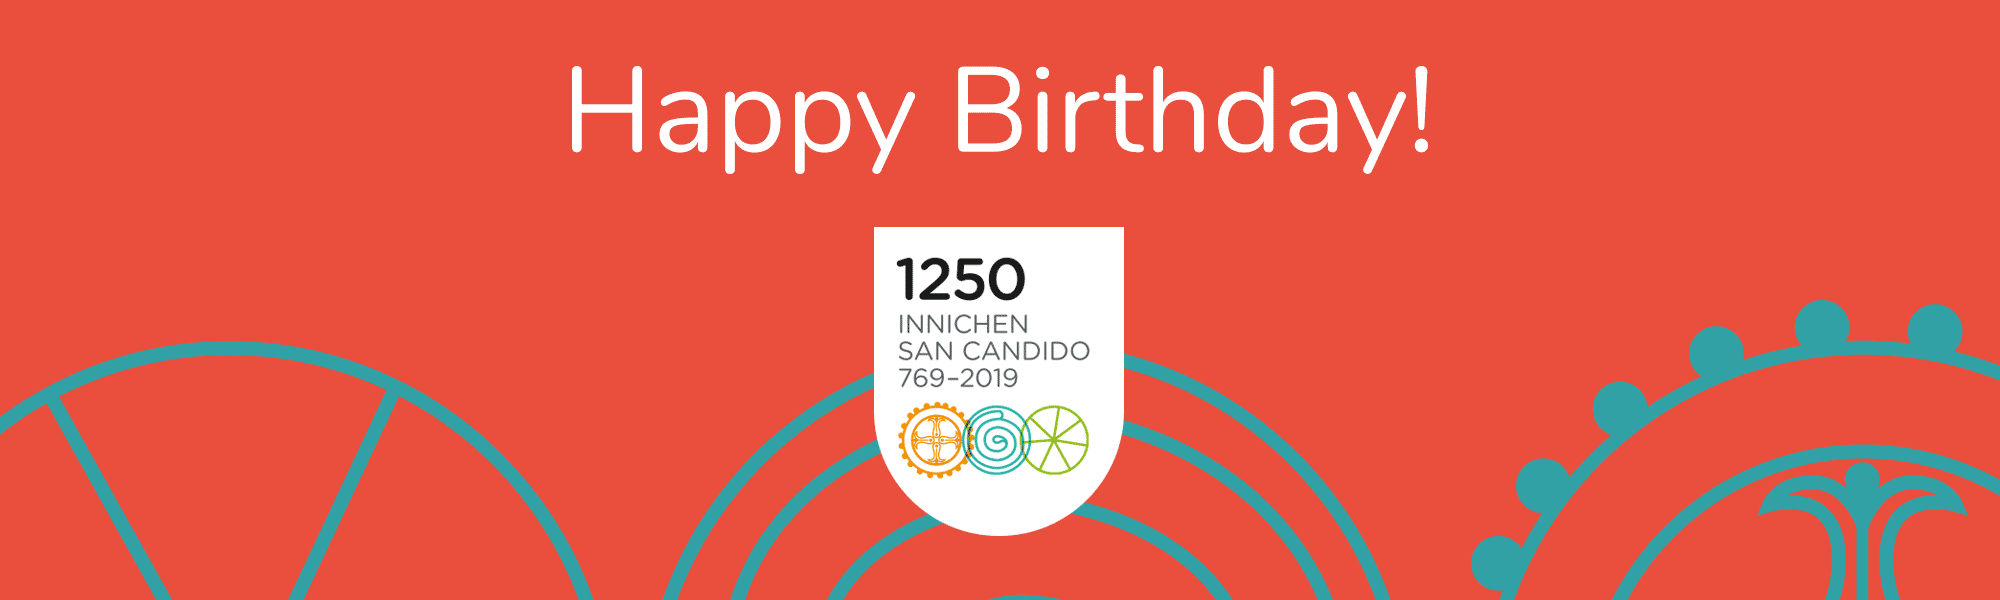 1250-happy-birthday